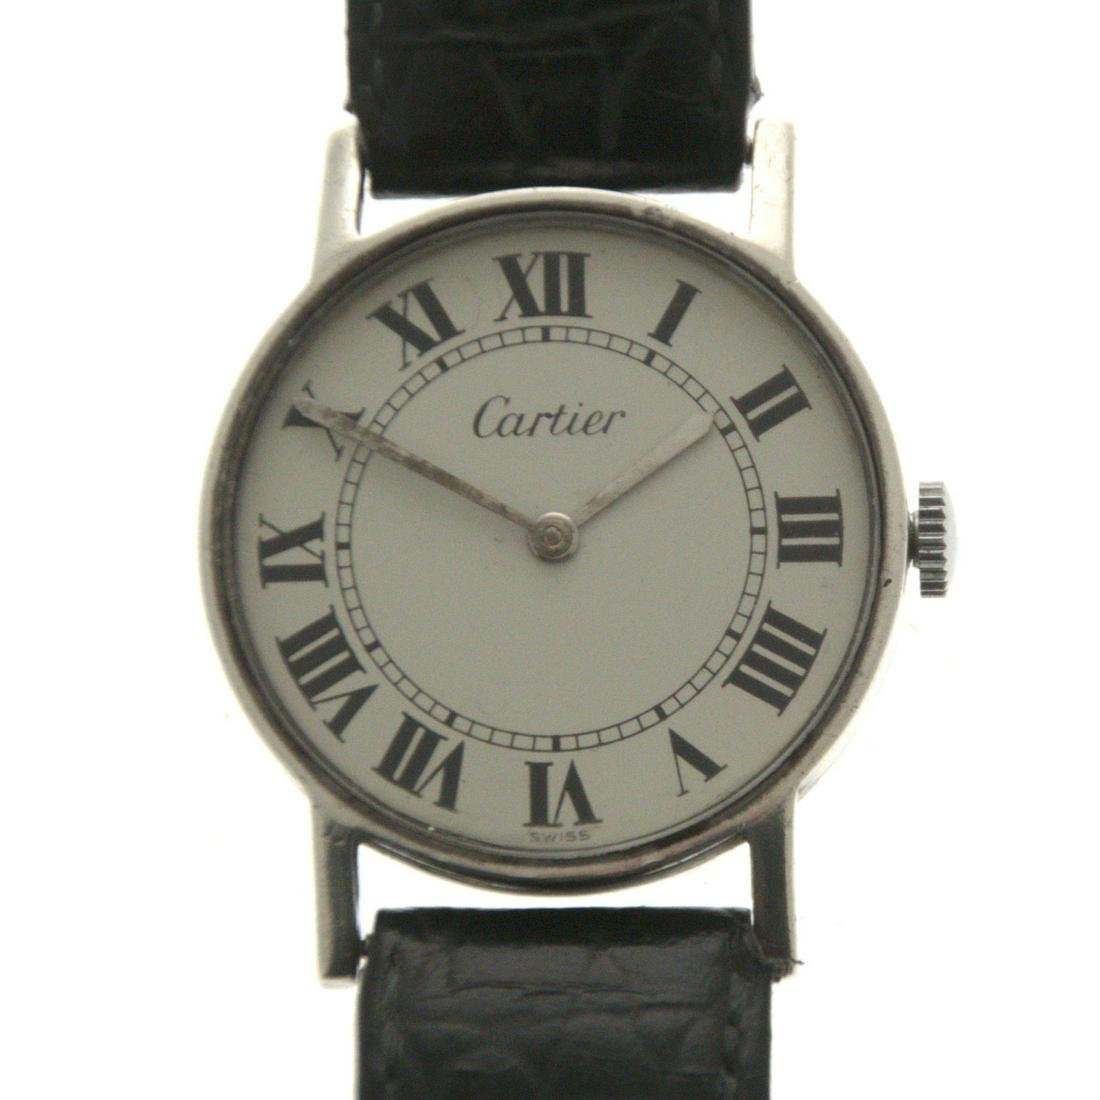 Cartier Sterling Silver Wrist Watch.